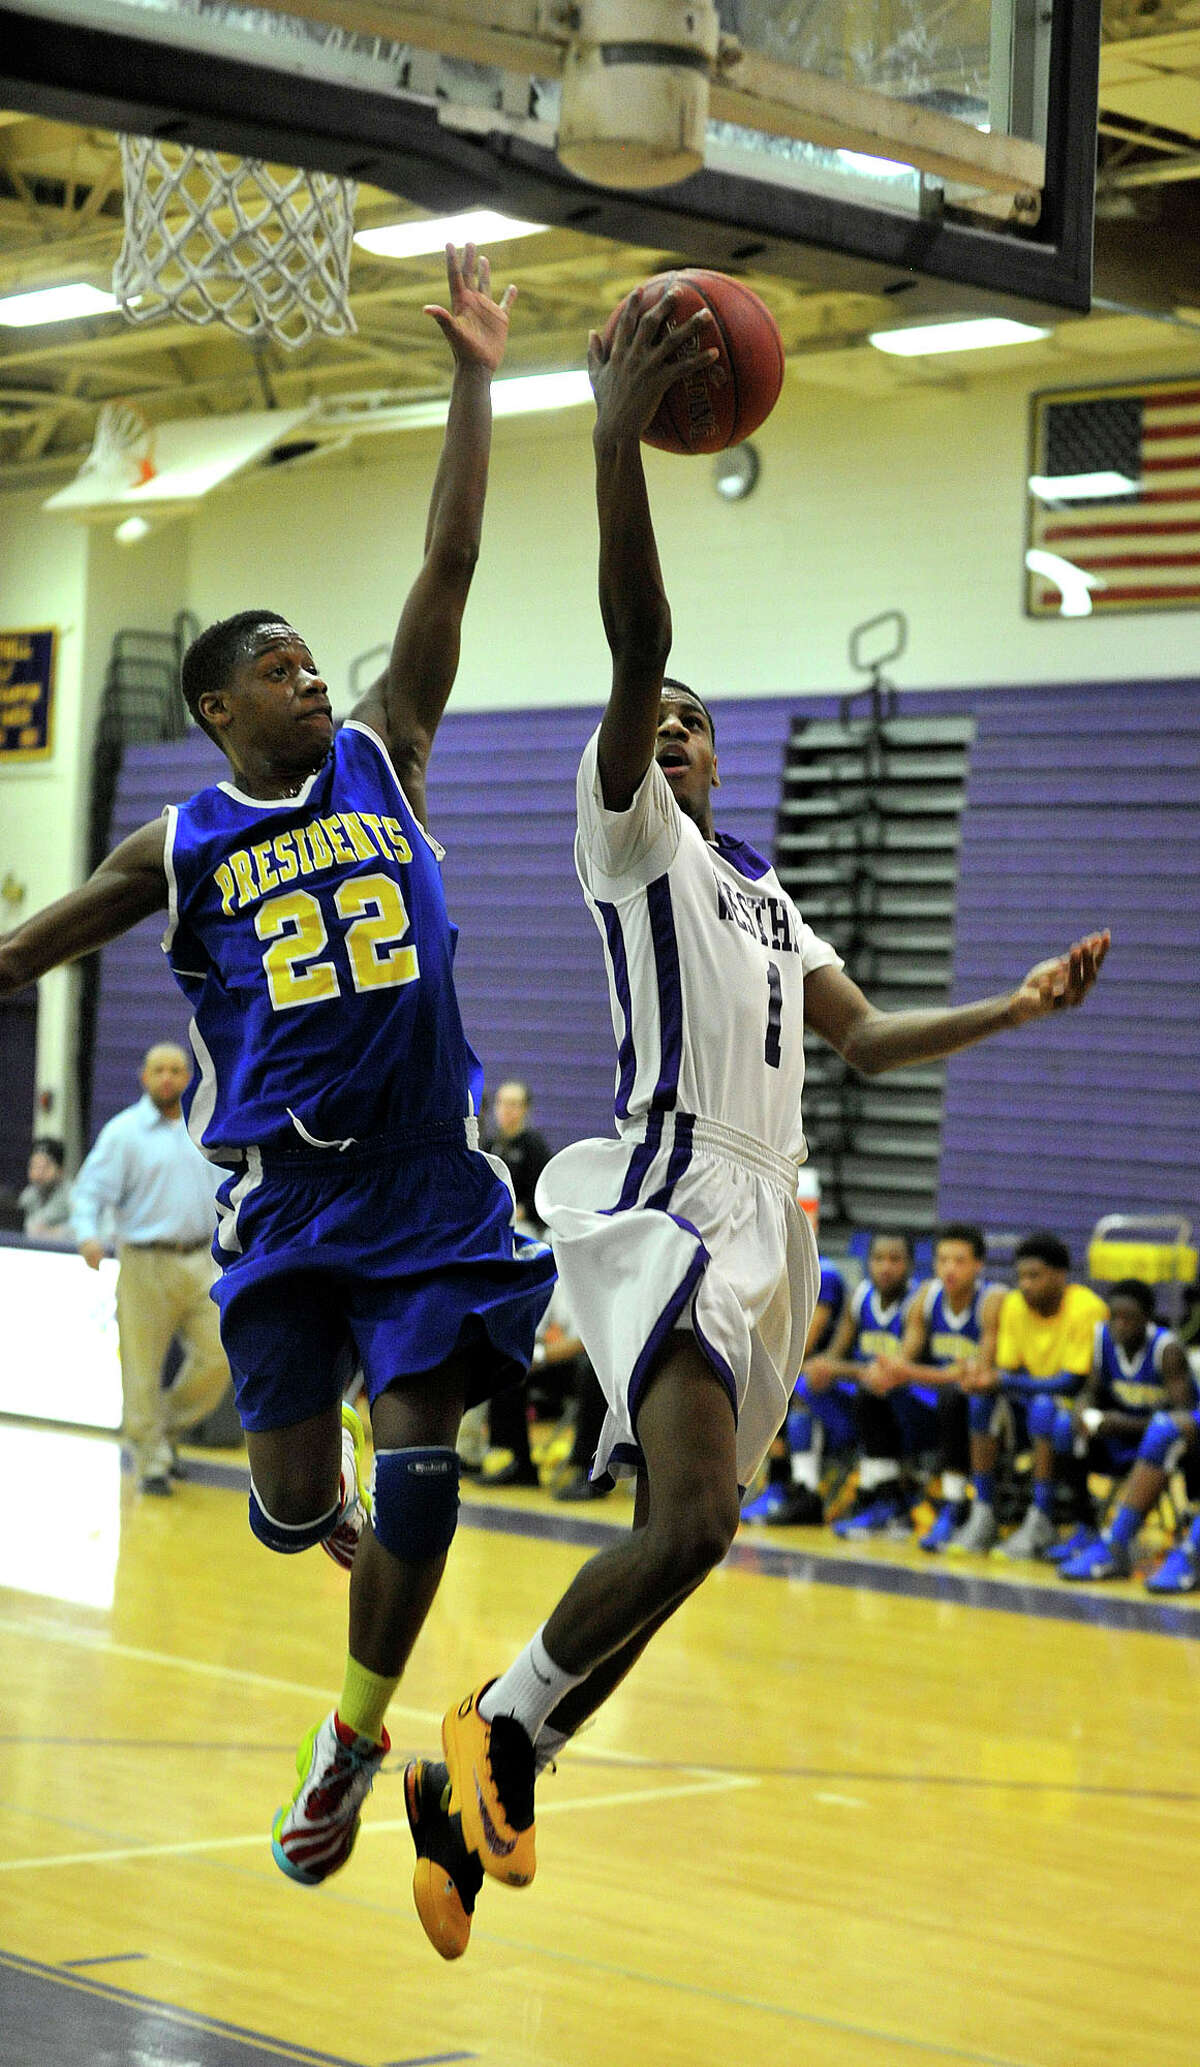 Westhill's Jeremiah Livingston attempts a layup while under pressure from Harding's Malcolm Simmons during their basketball game at Westhill High School in Stamford, Conn., on Tuesday, Jan. 14, 2014. Westhill won, 67-50.